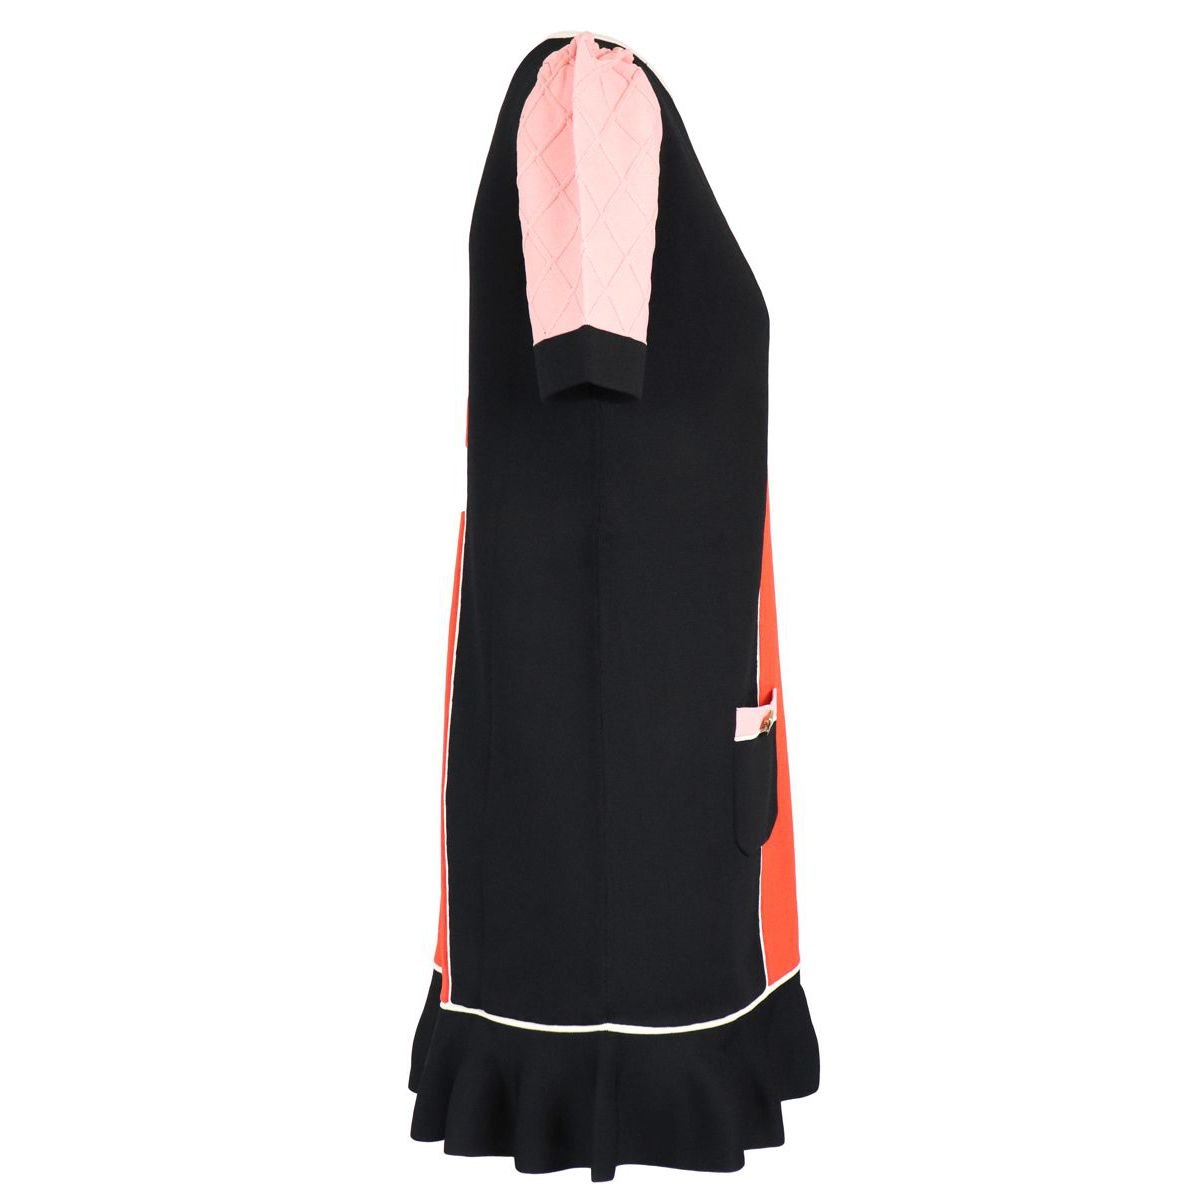 Long dress in viscose blend with front pockets Black red Elisabetta Franchi